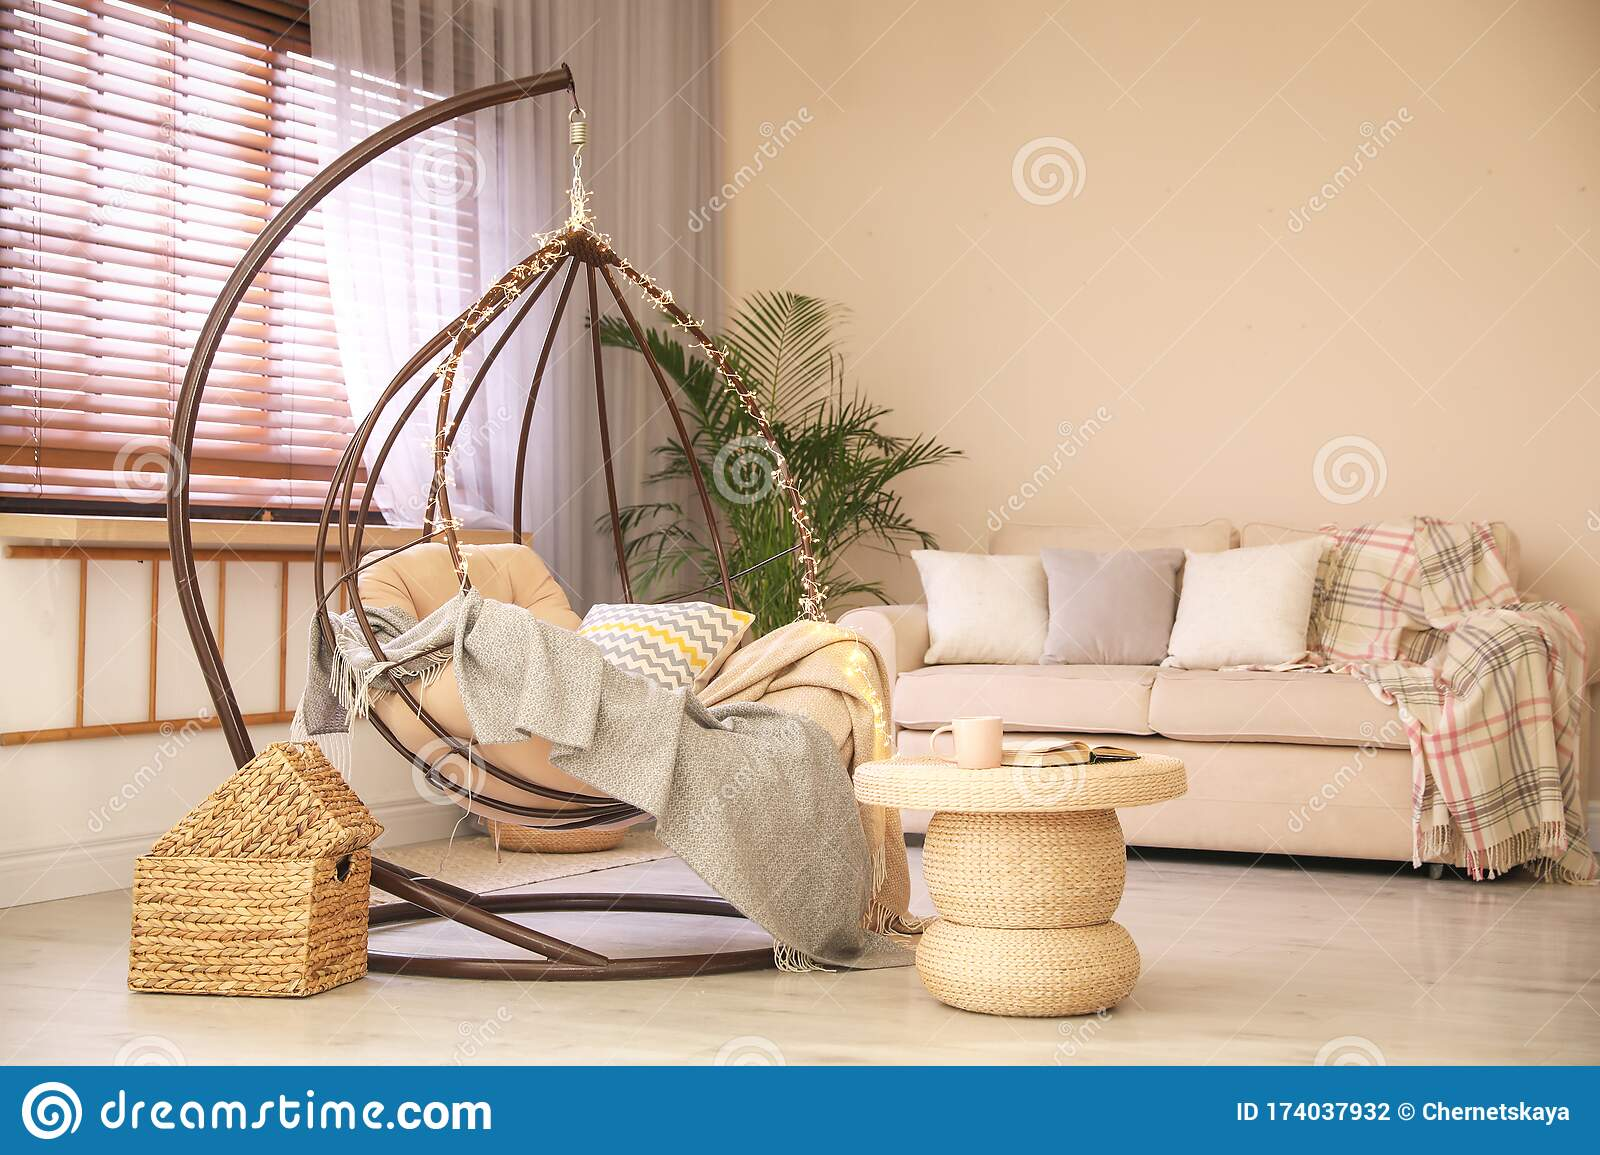 Cozy Hanging Chair With Fairy Lights In Modern Living Room Interior Design Stock Photo Image Of Hanging Flat 174037932